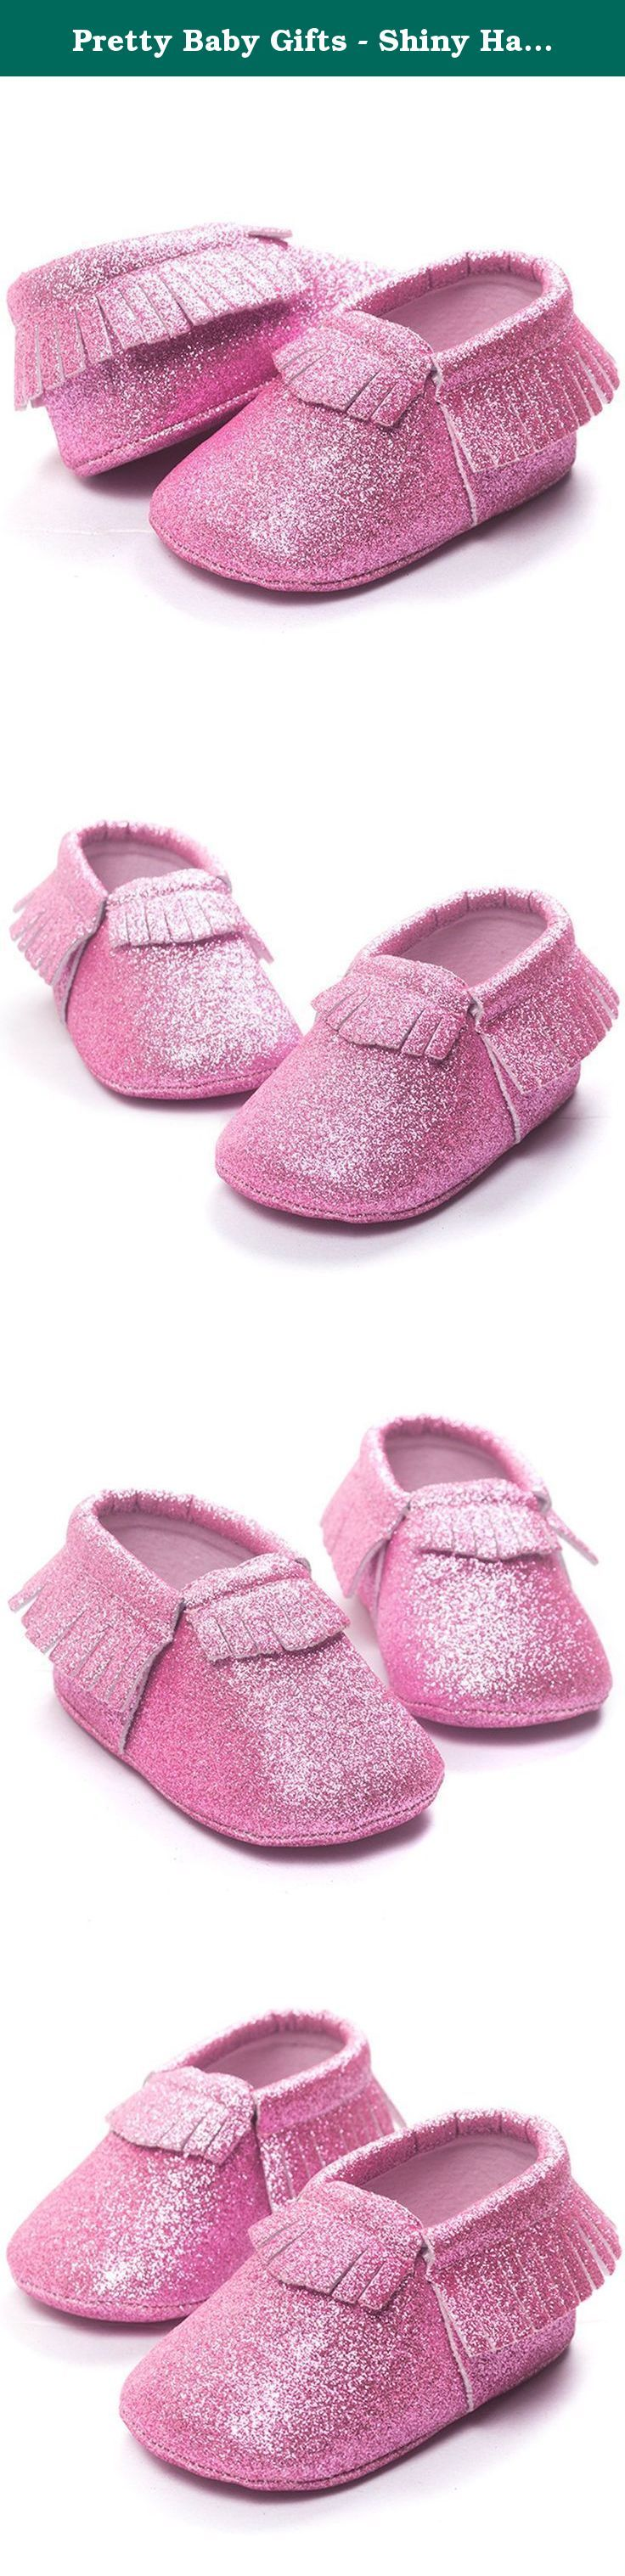 1000  ideas about Best Baby Shoes on Pinterest   Baby shoes ...